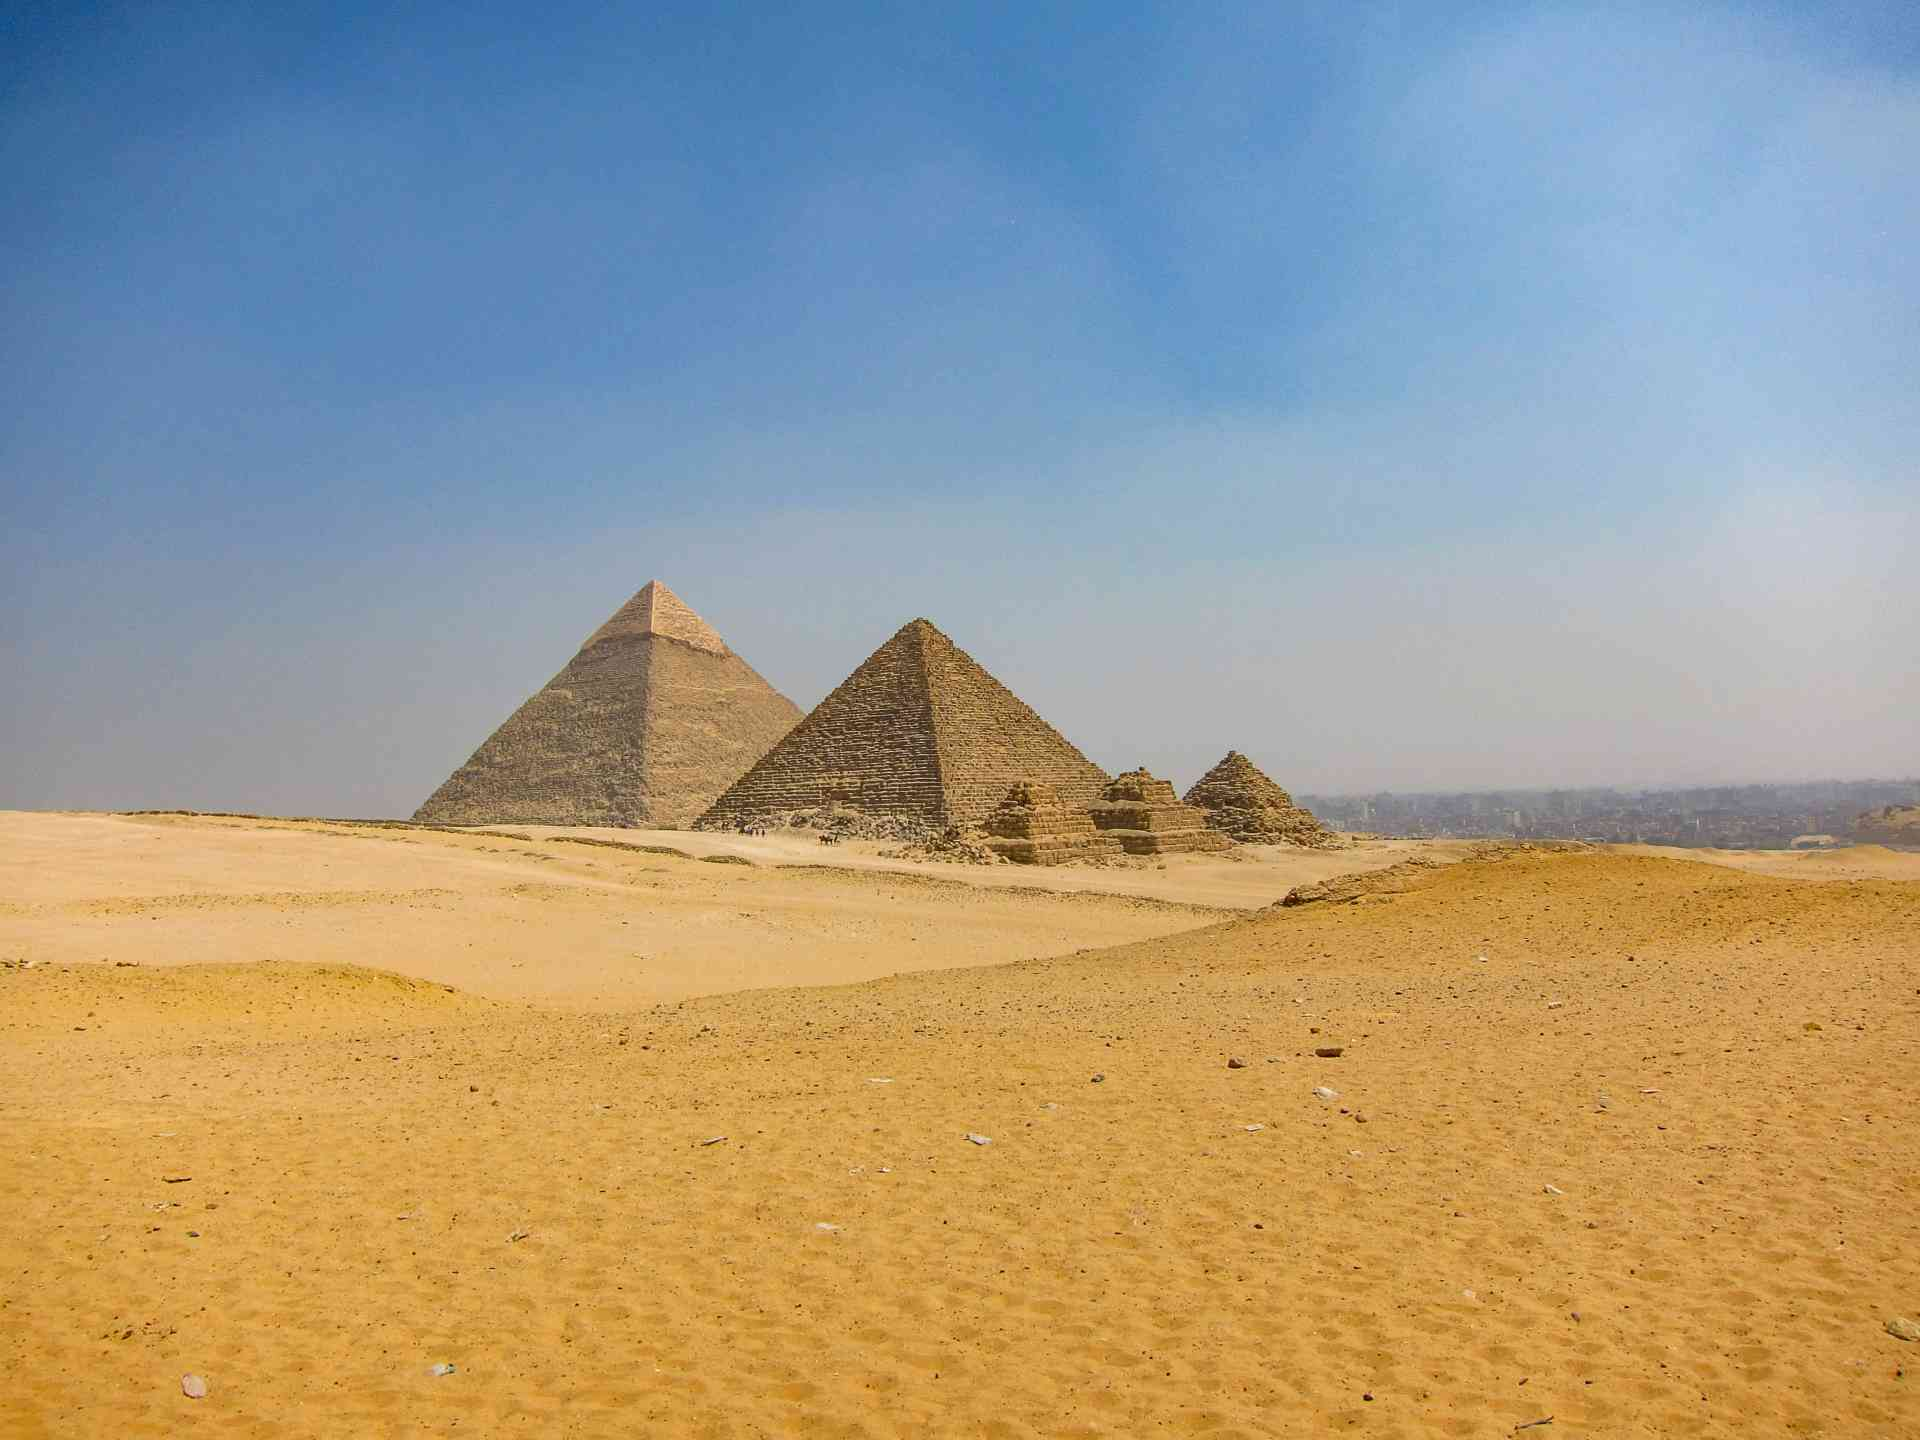 Pyramids of Giza, Egypt by Abbie Bell